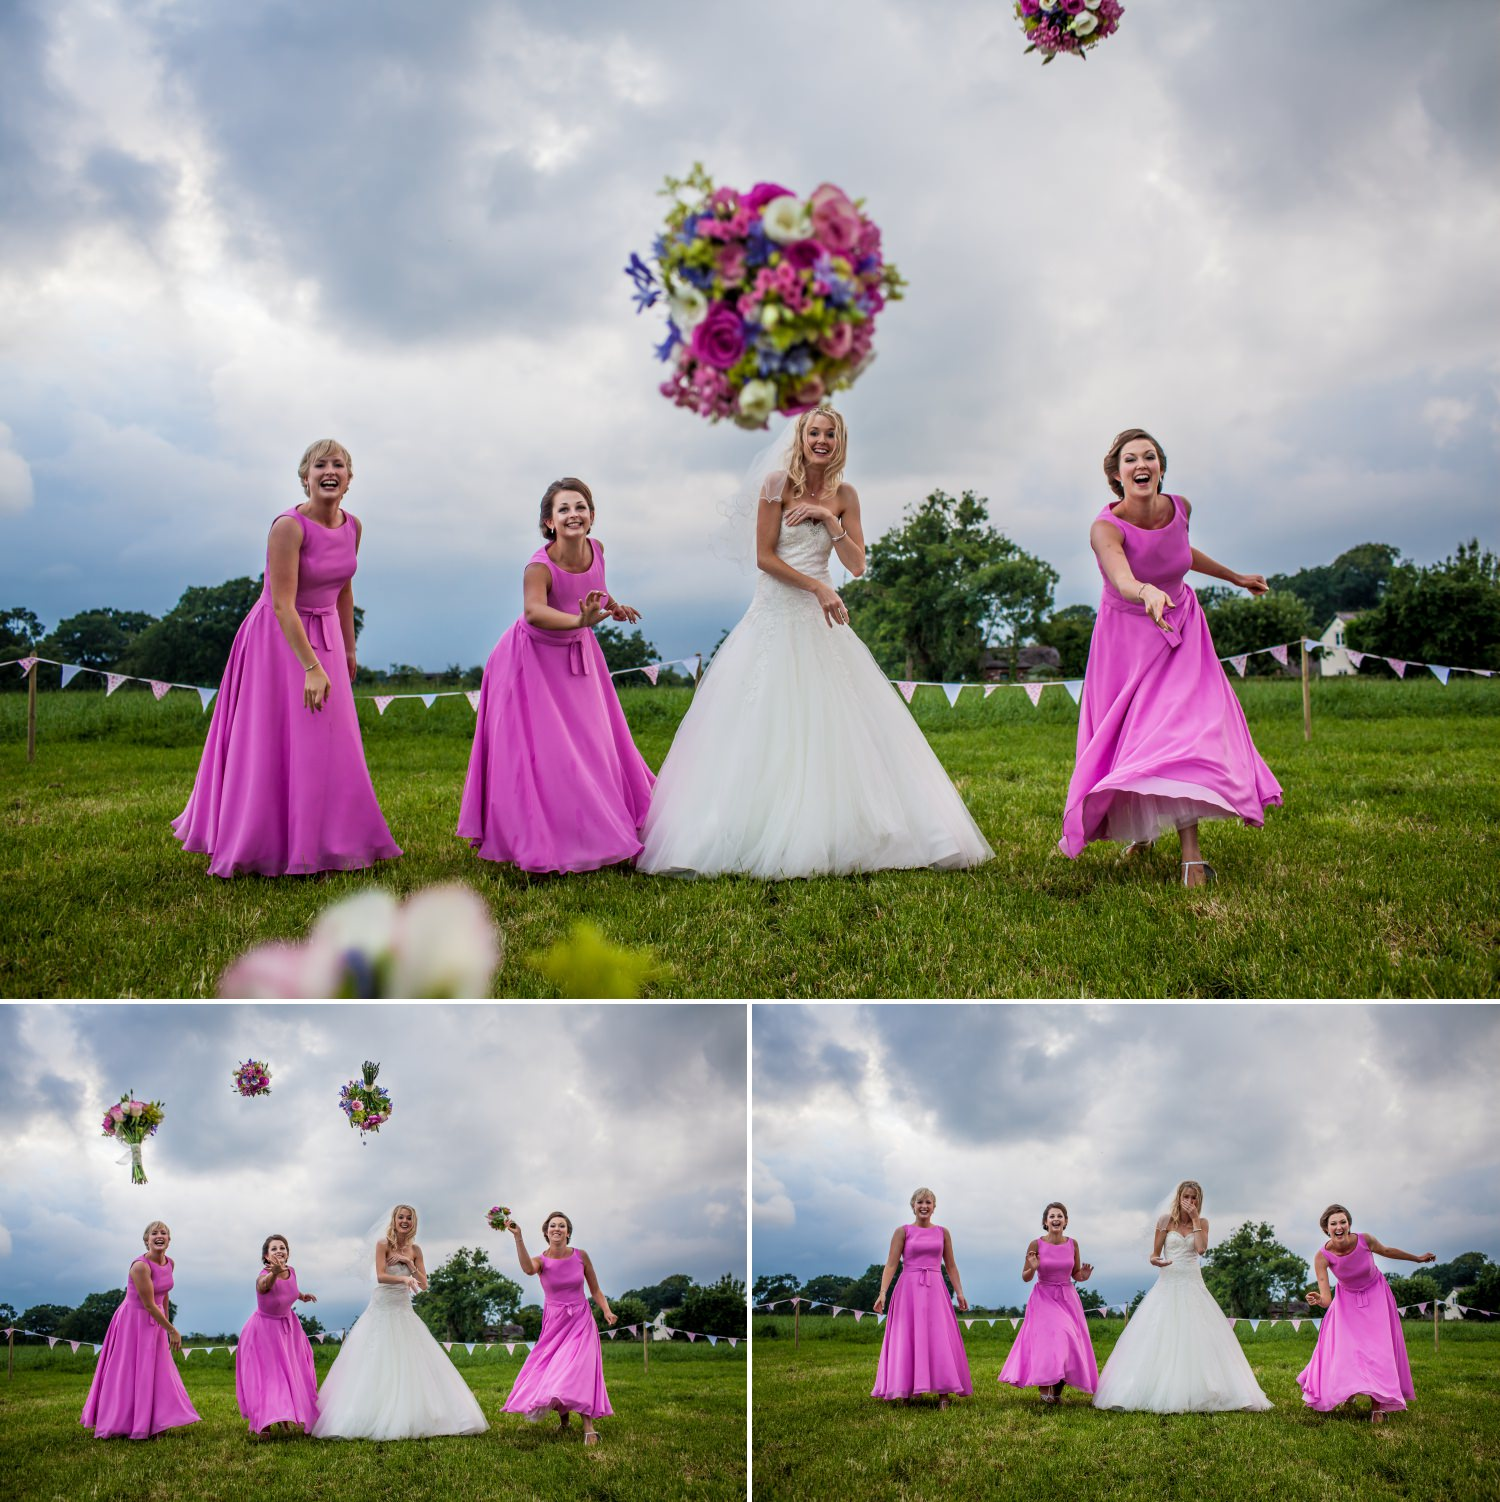 Wedding Bouquet toss being photographed in cheshire